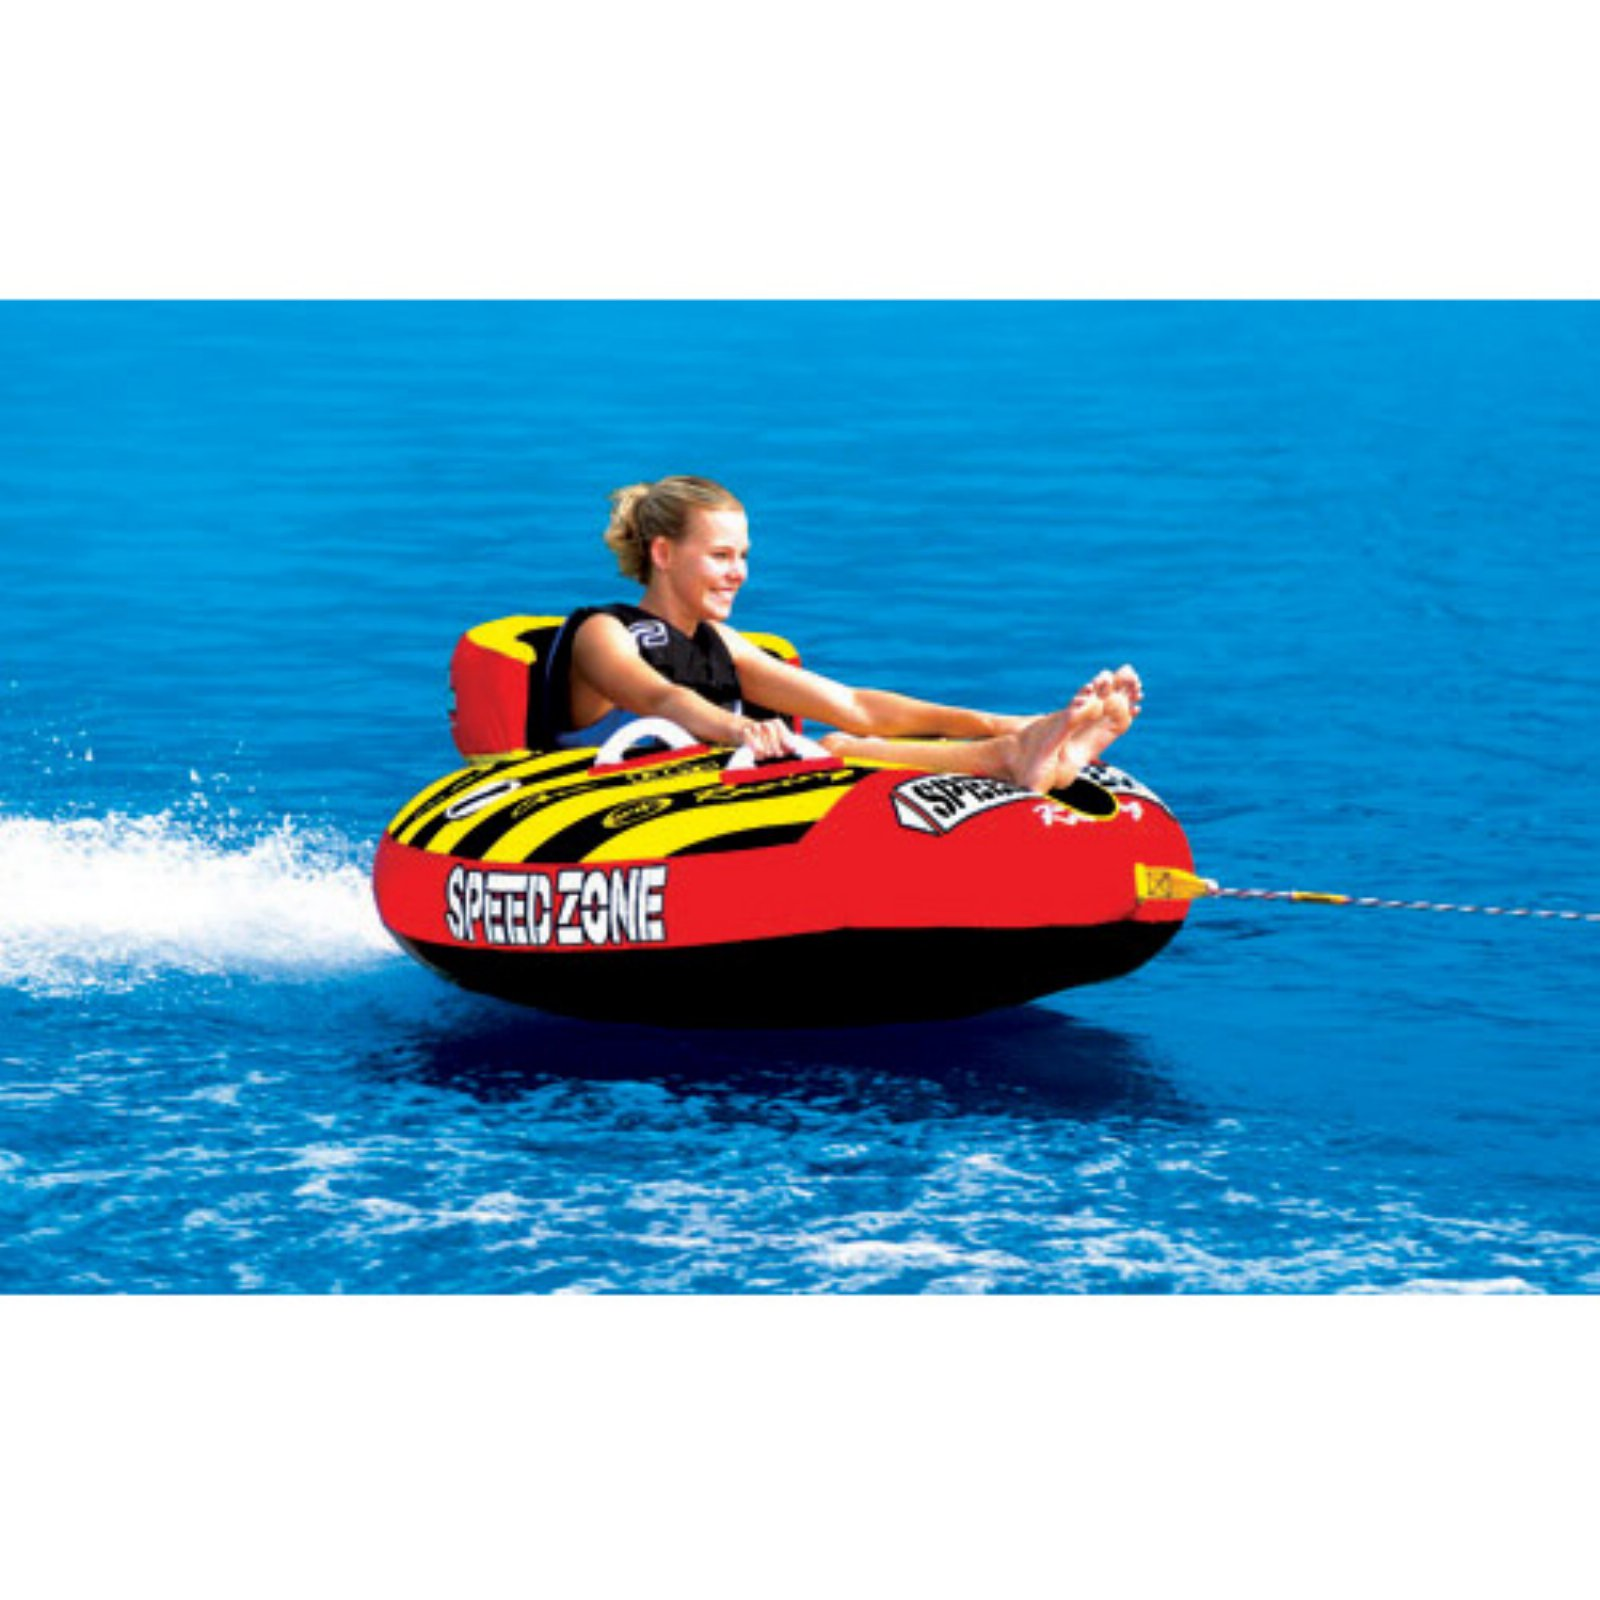 Sportsstuff Speedzone 1 Inflatable Single Rider Towable by Kwik Tek